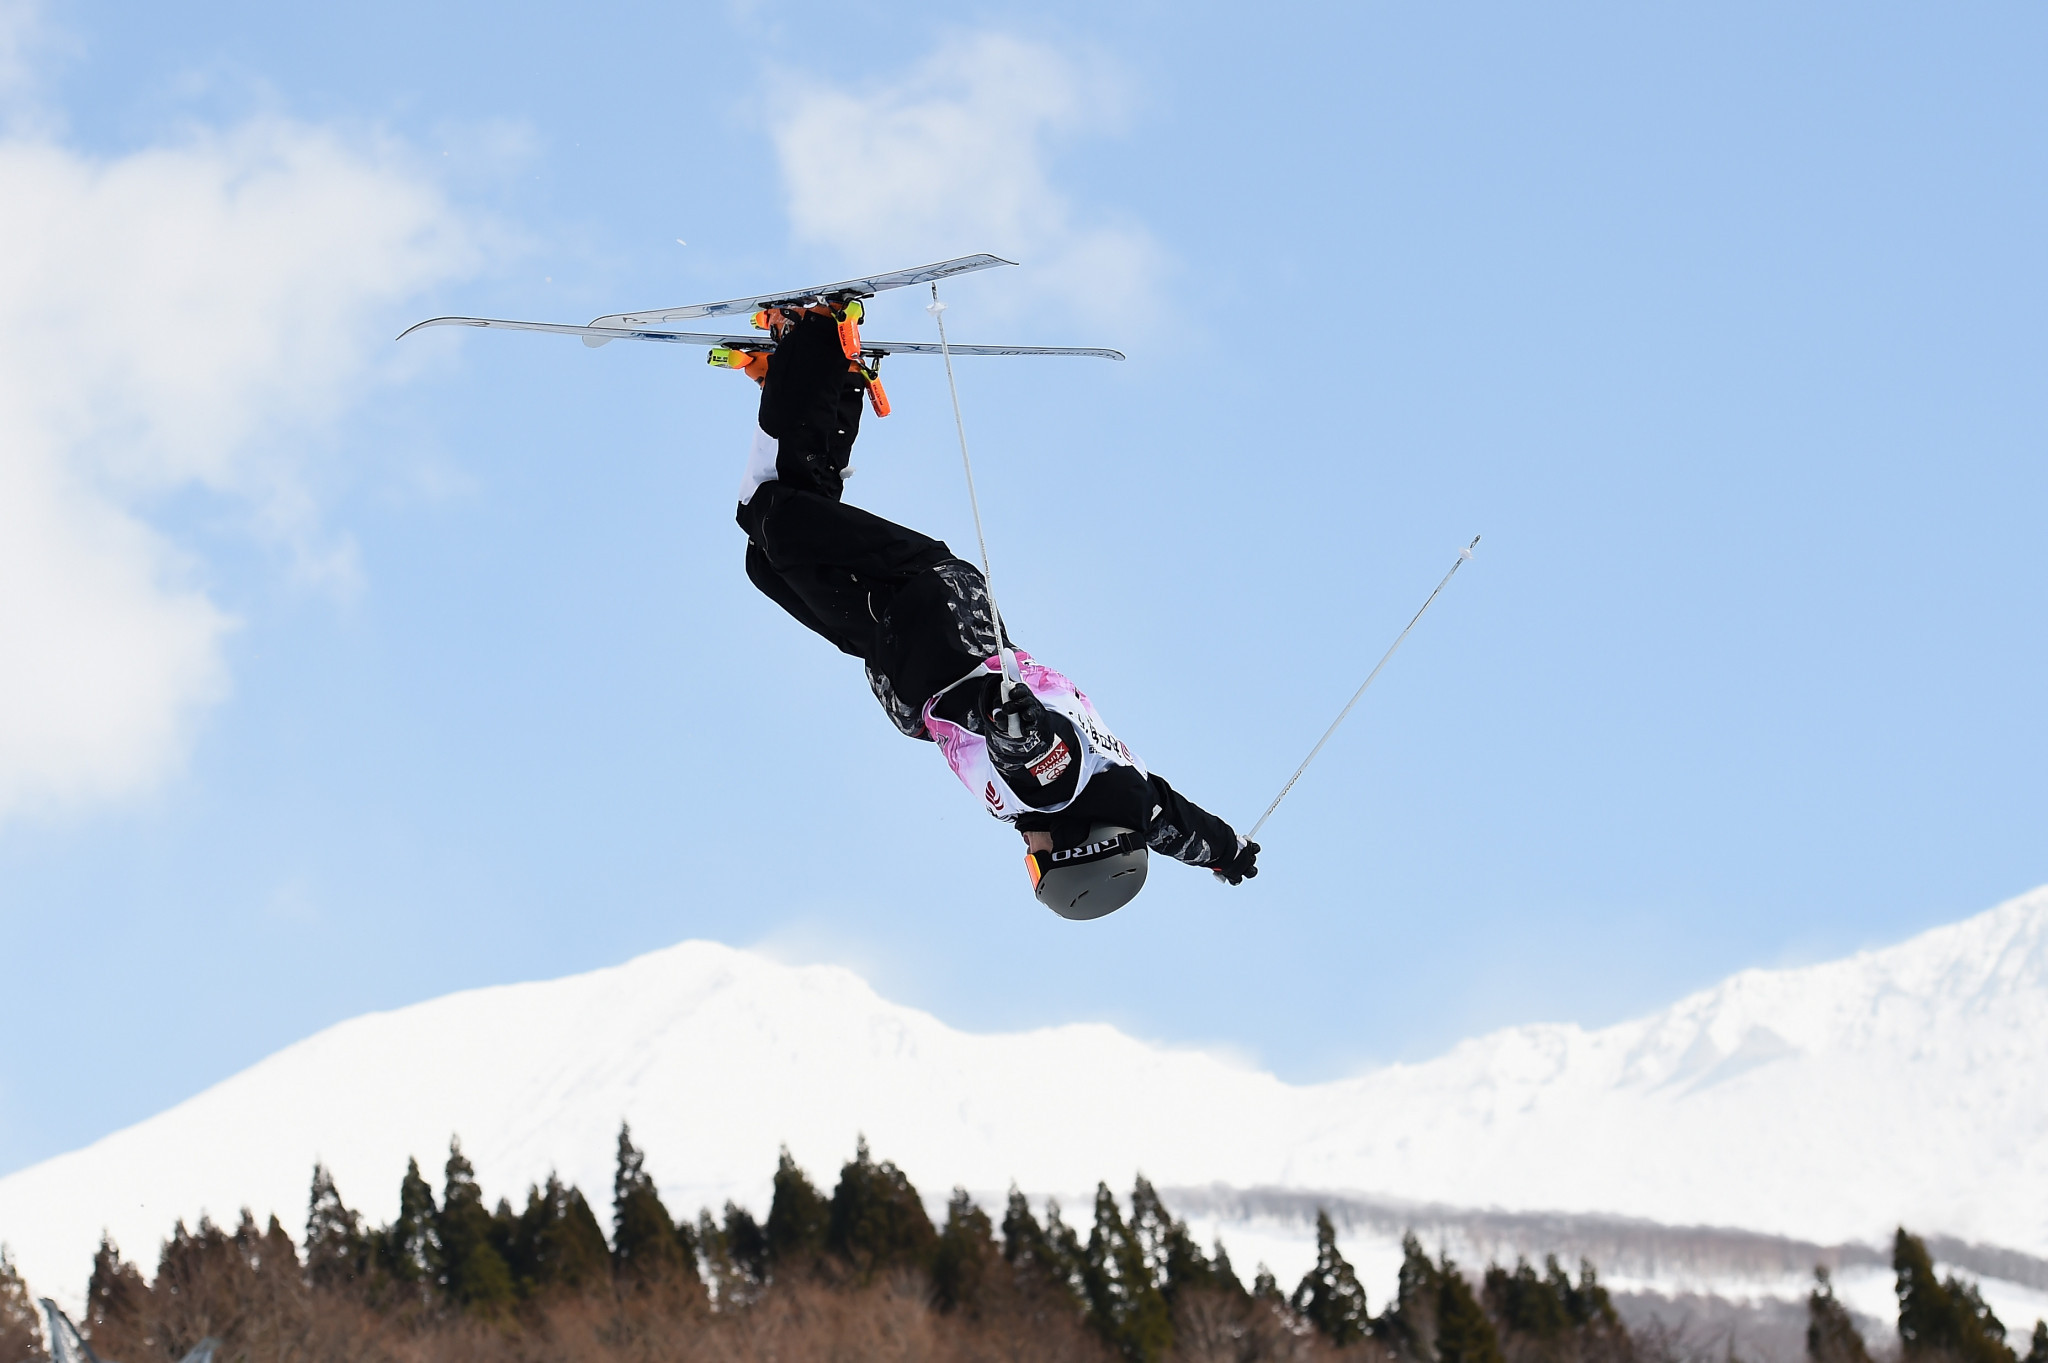 US Ski and Snowboard reveal athletes nominated on moguls and aerials squads for next season